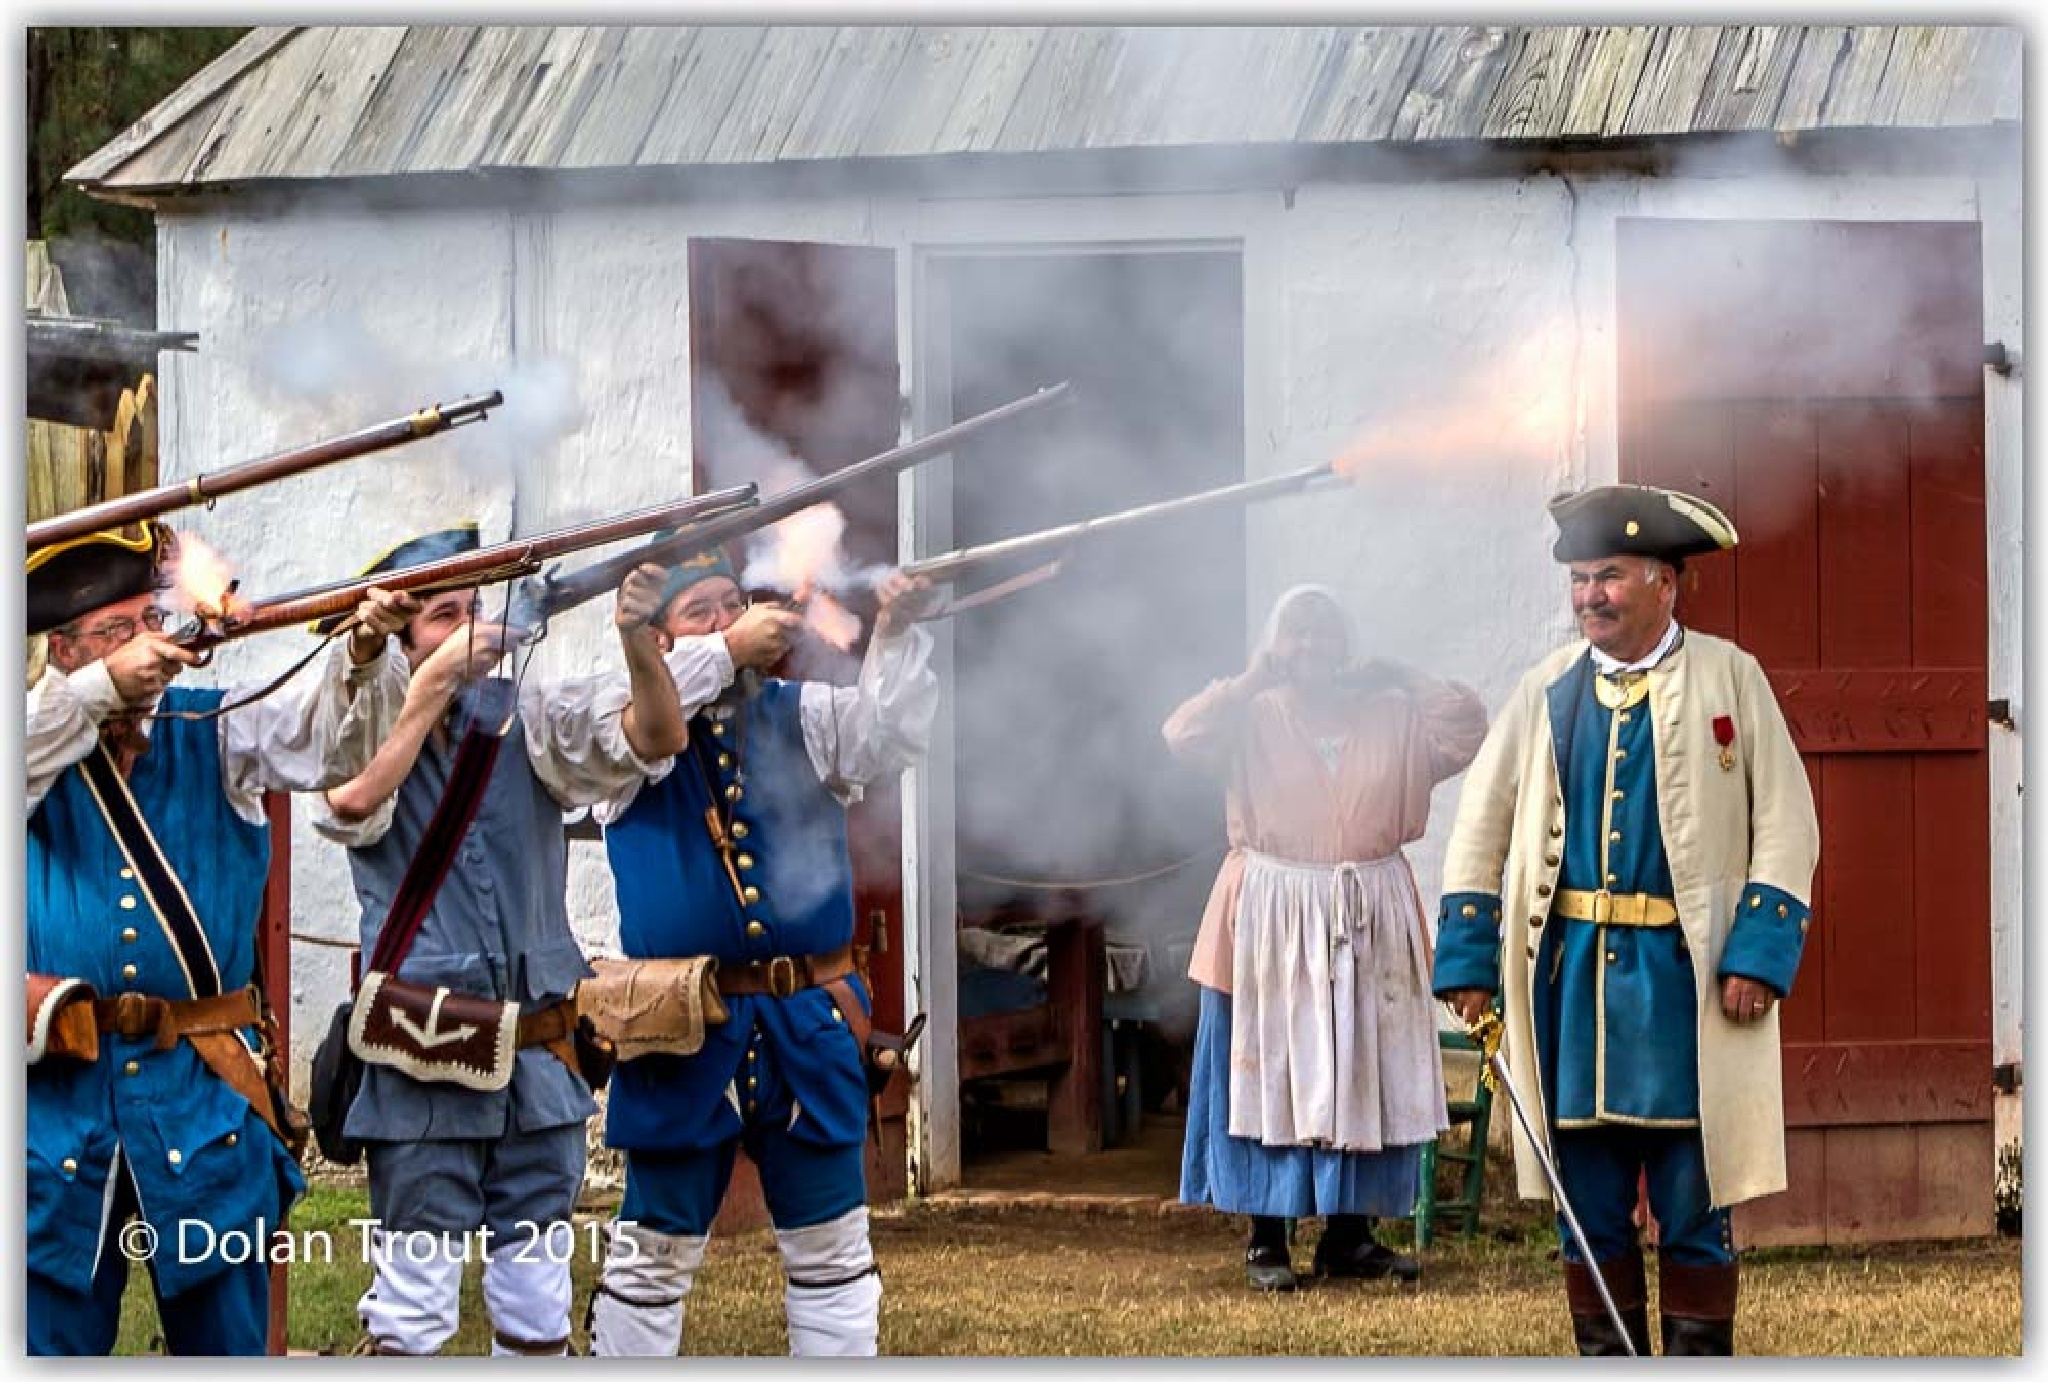 French soldiers firing their black powder rifles by bluesydude